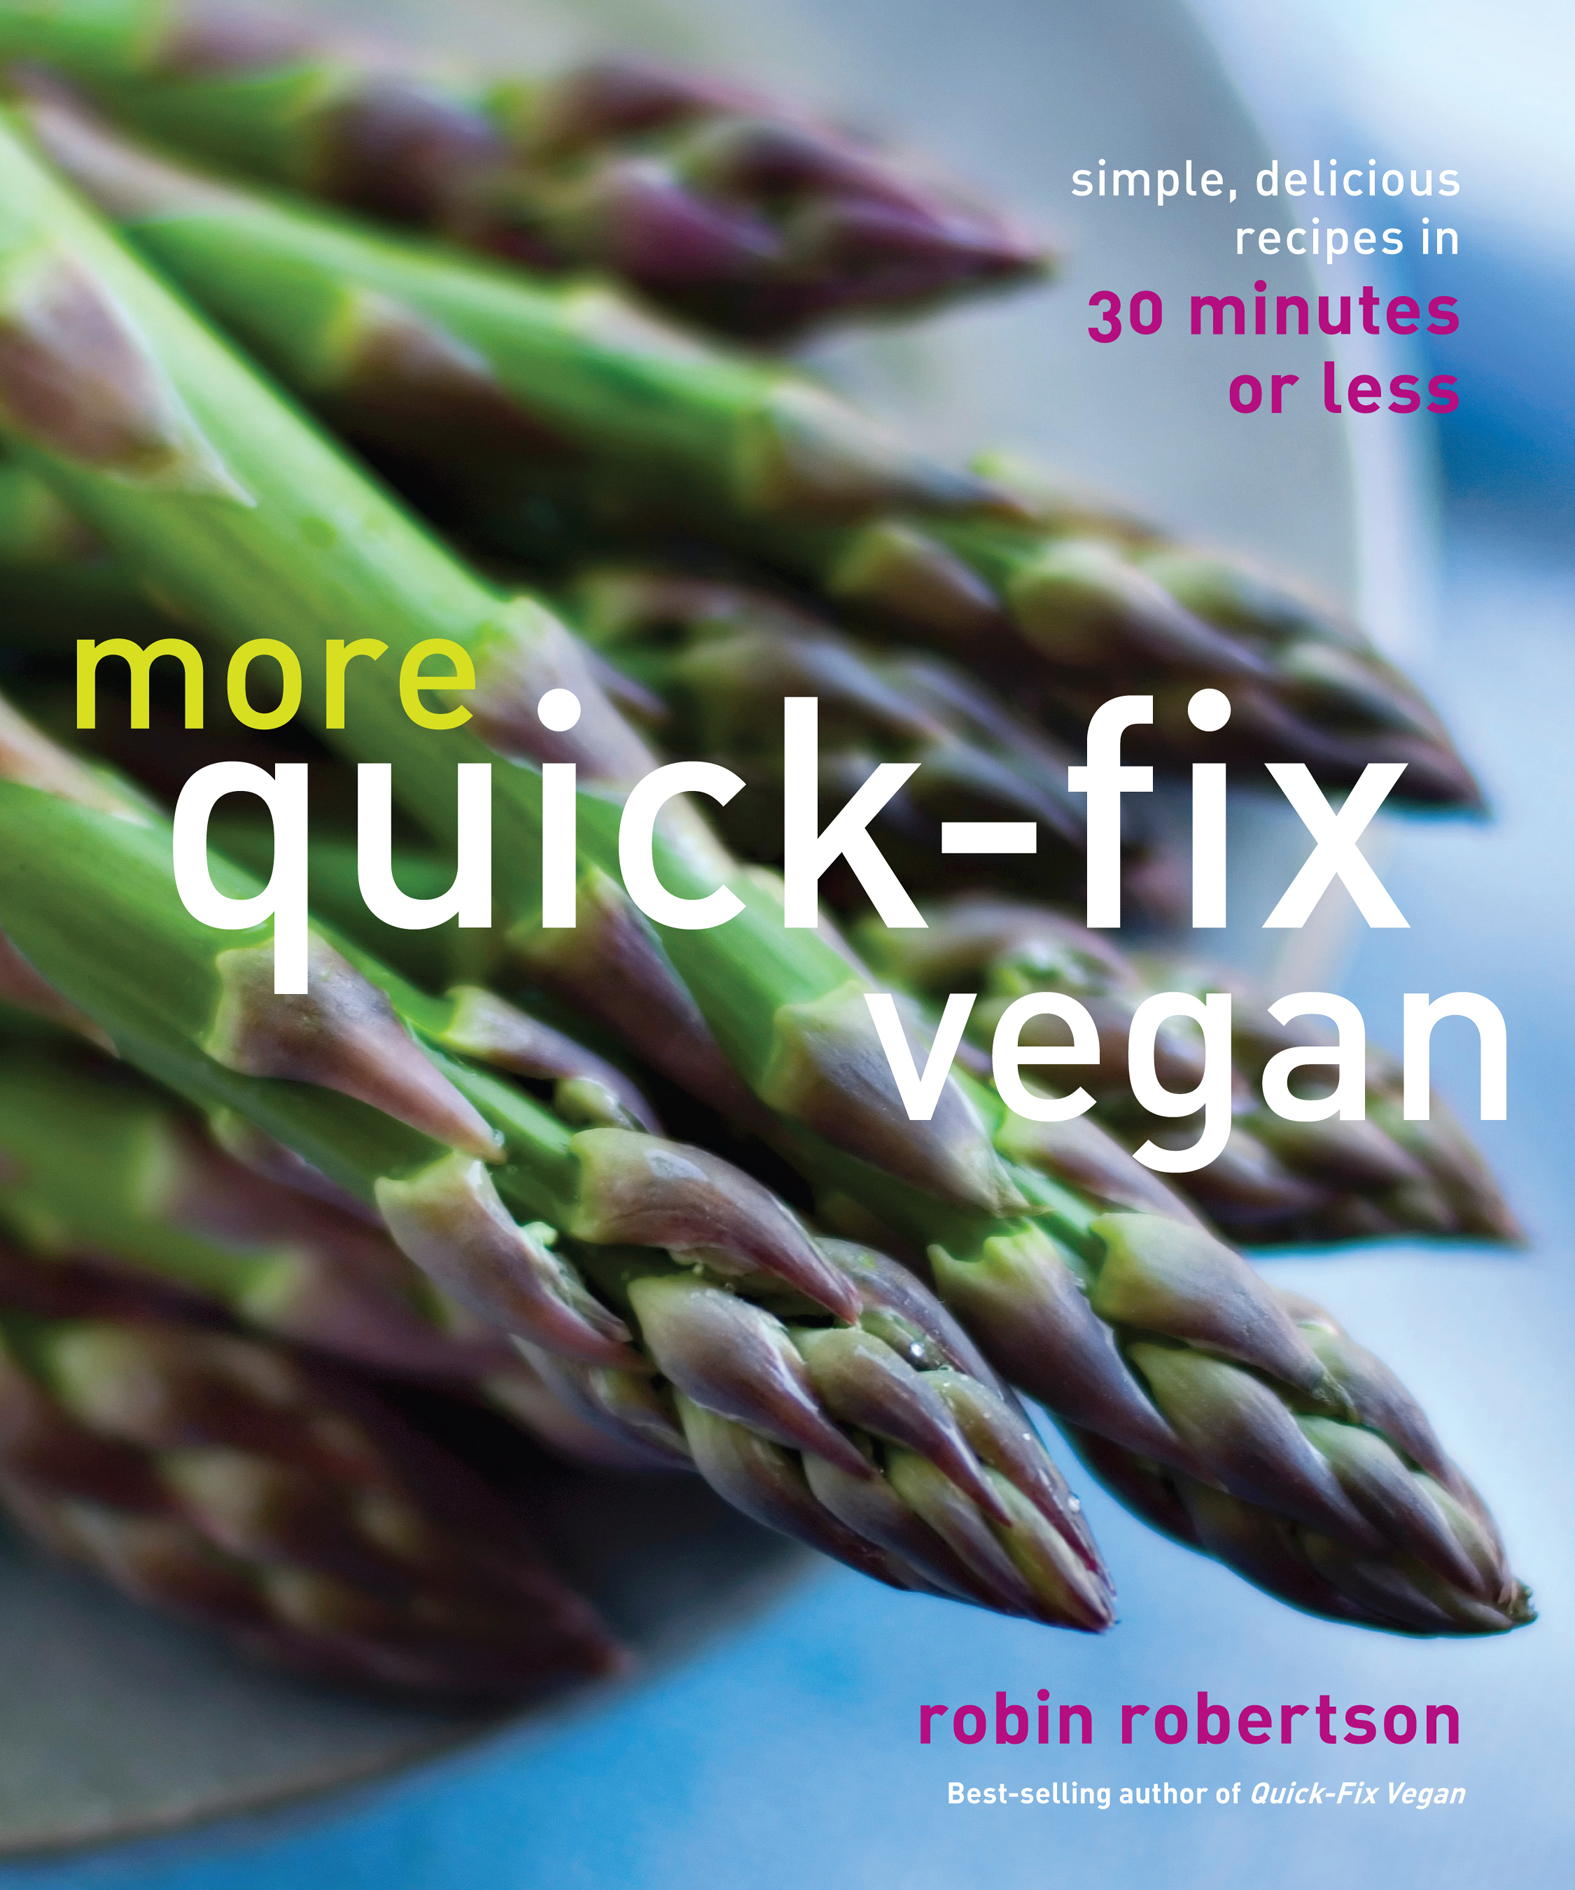 More Quick-Fix Vegan Simple, Delicious Recipes in 30 Minutes or Less